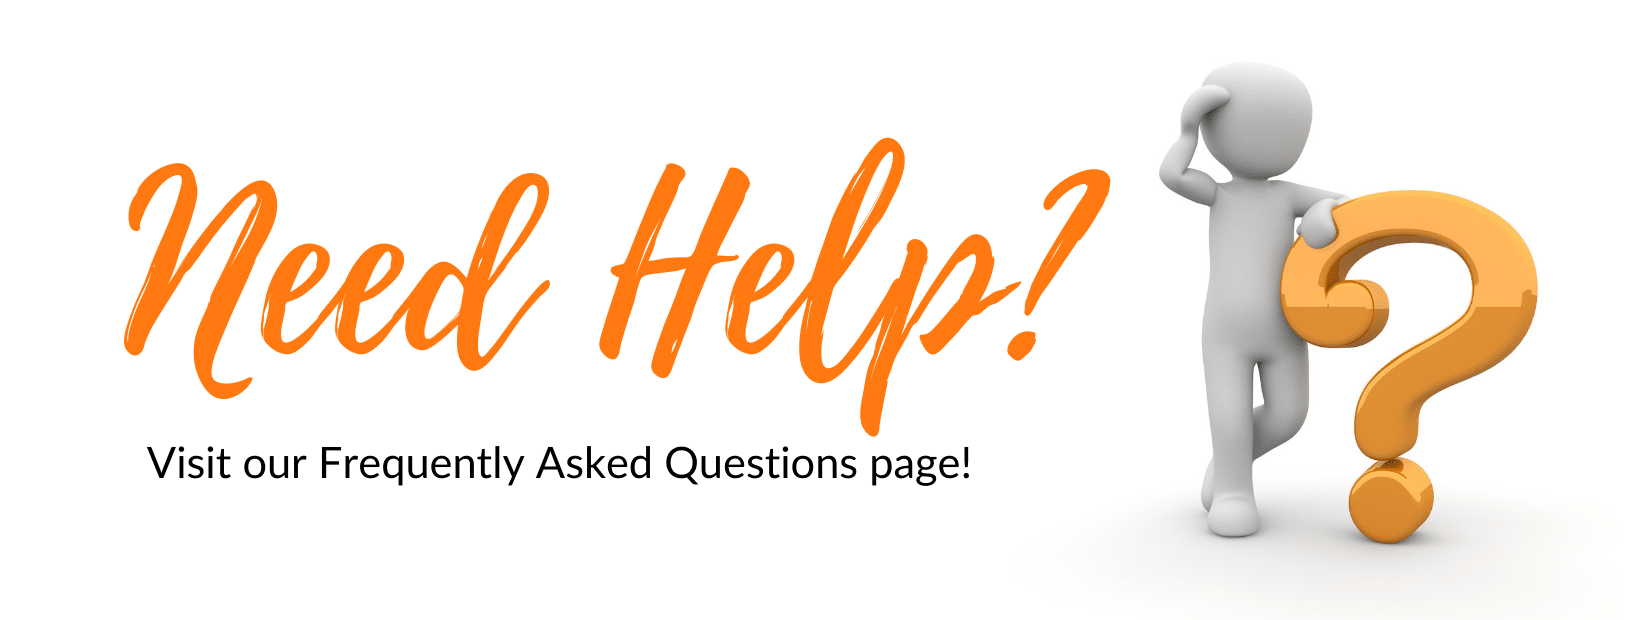 Need help? Visit out Frequently Asked Questions page!